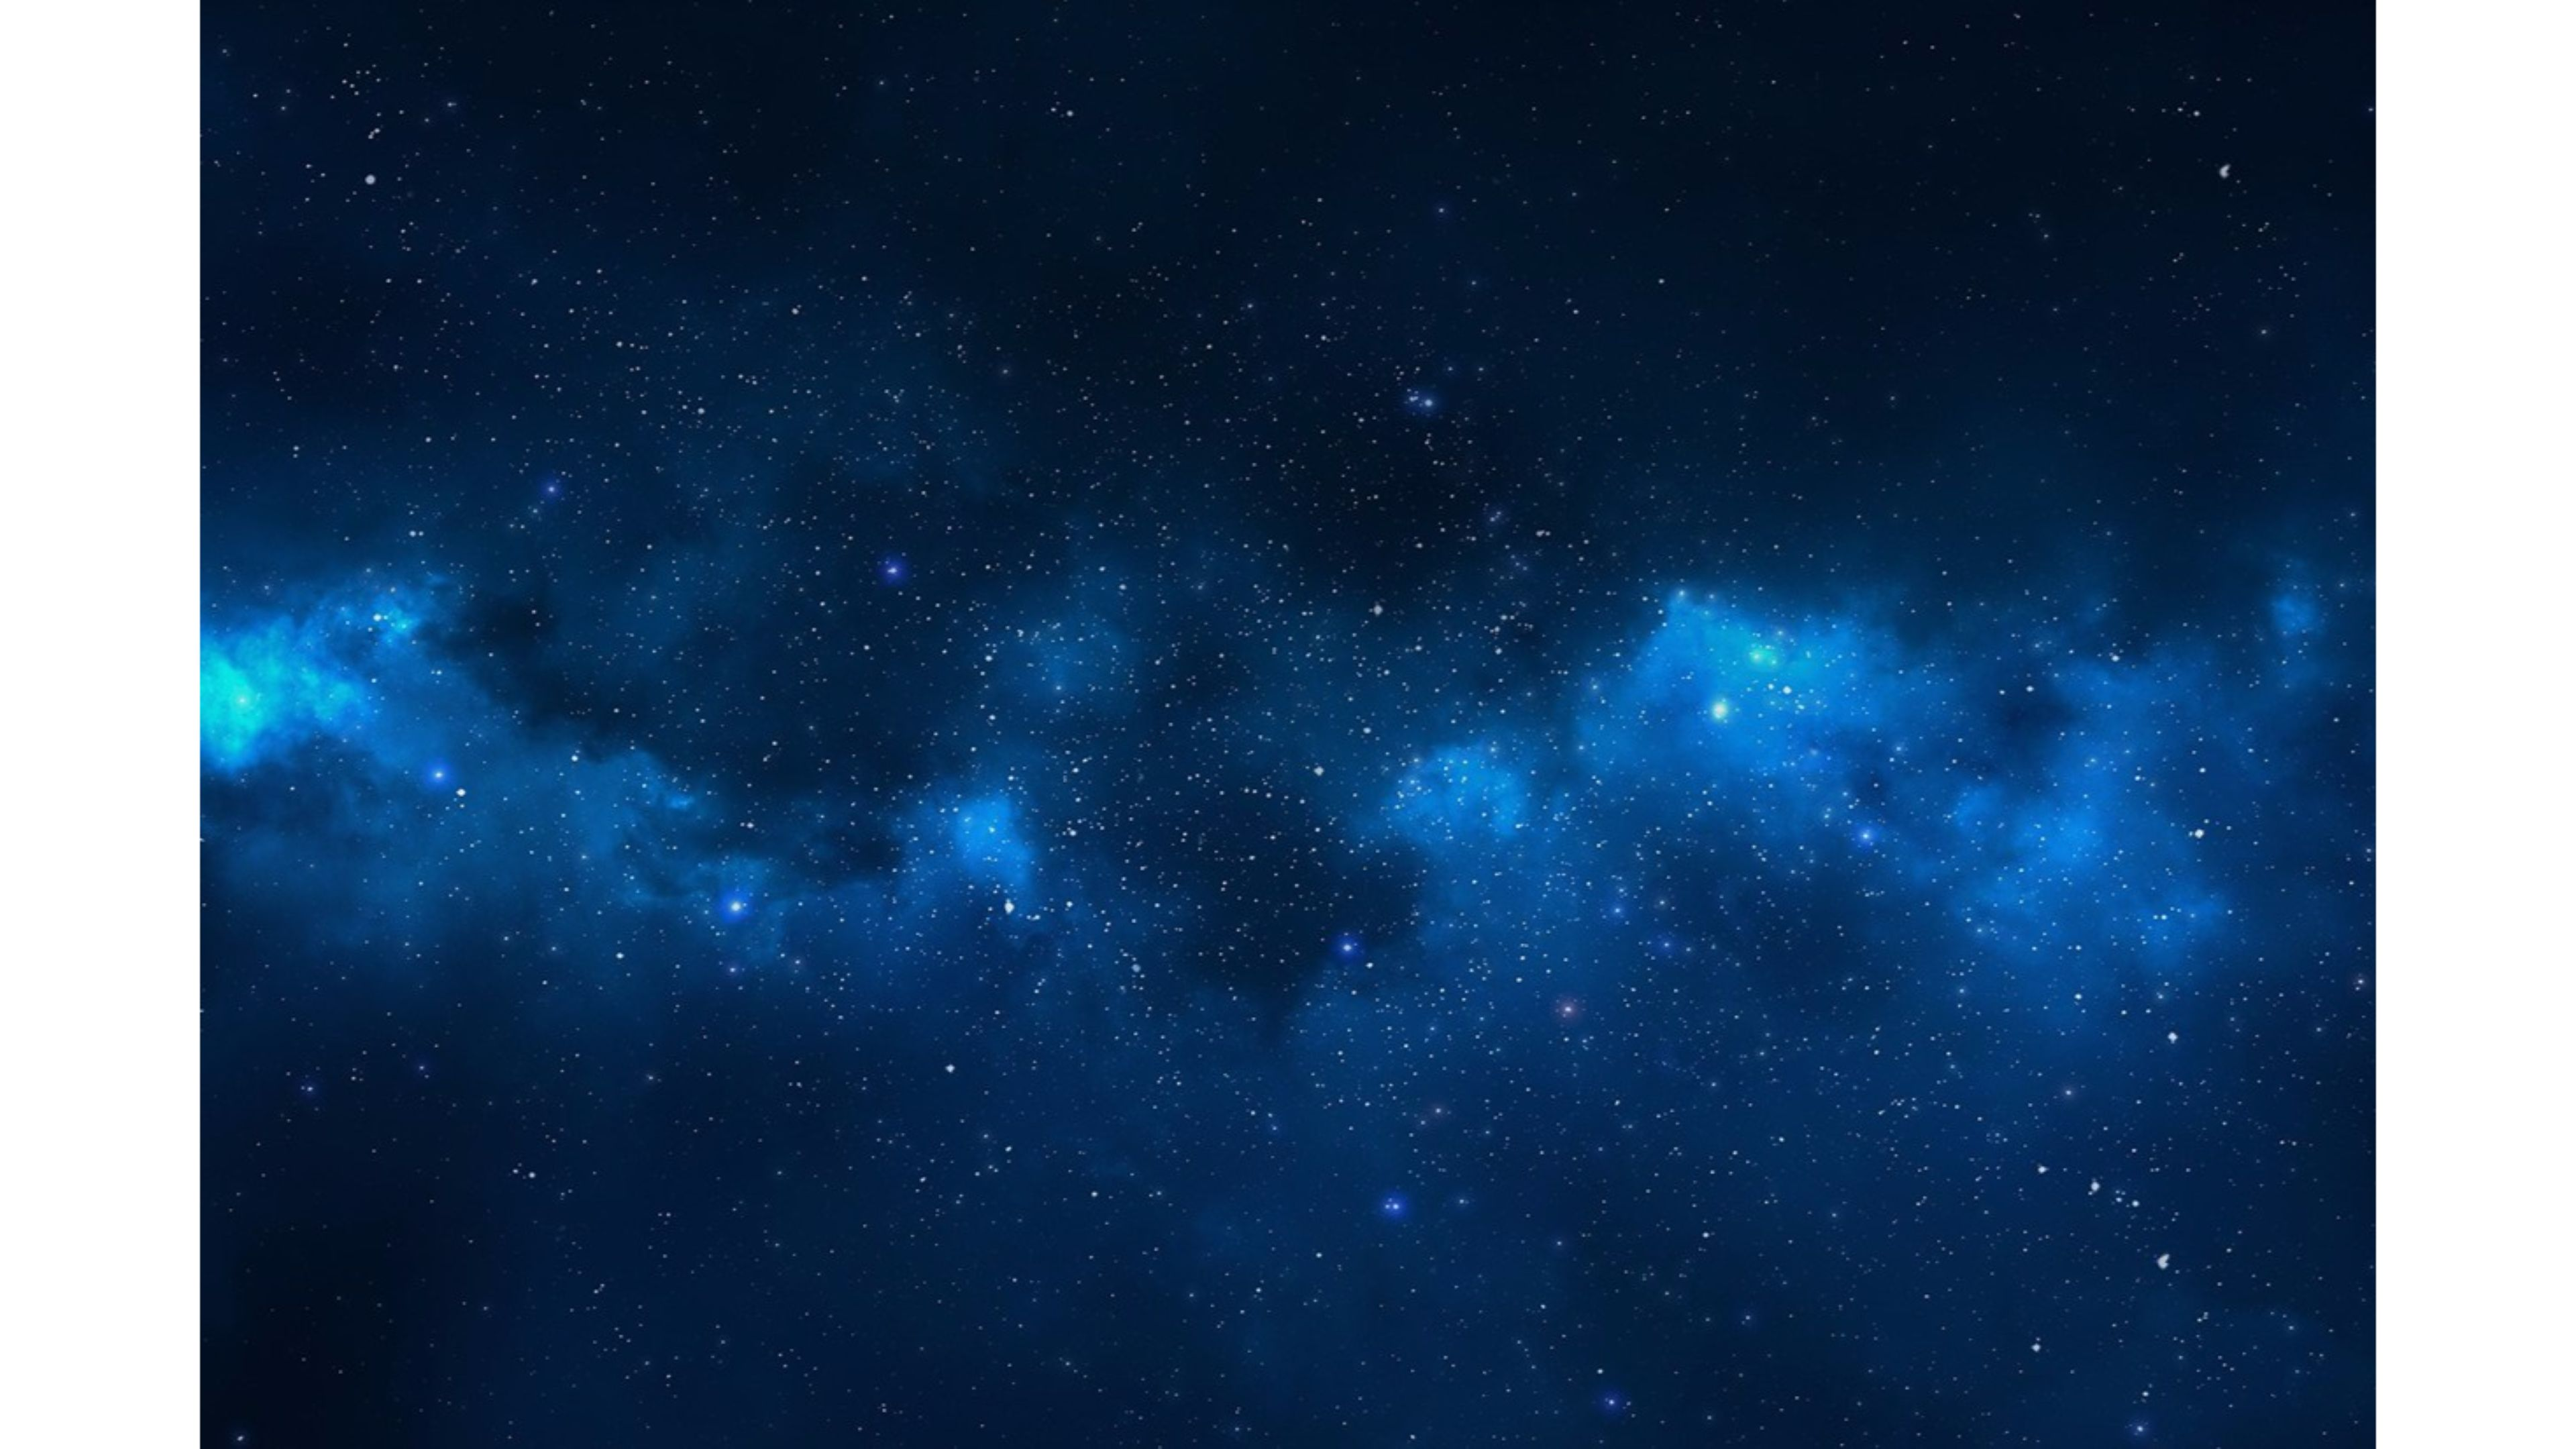 Blue Space 4K Wallpaper 4K Wallpaper 3840x2160